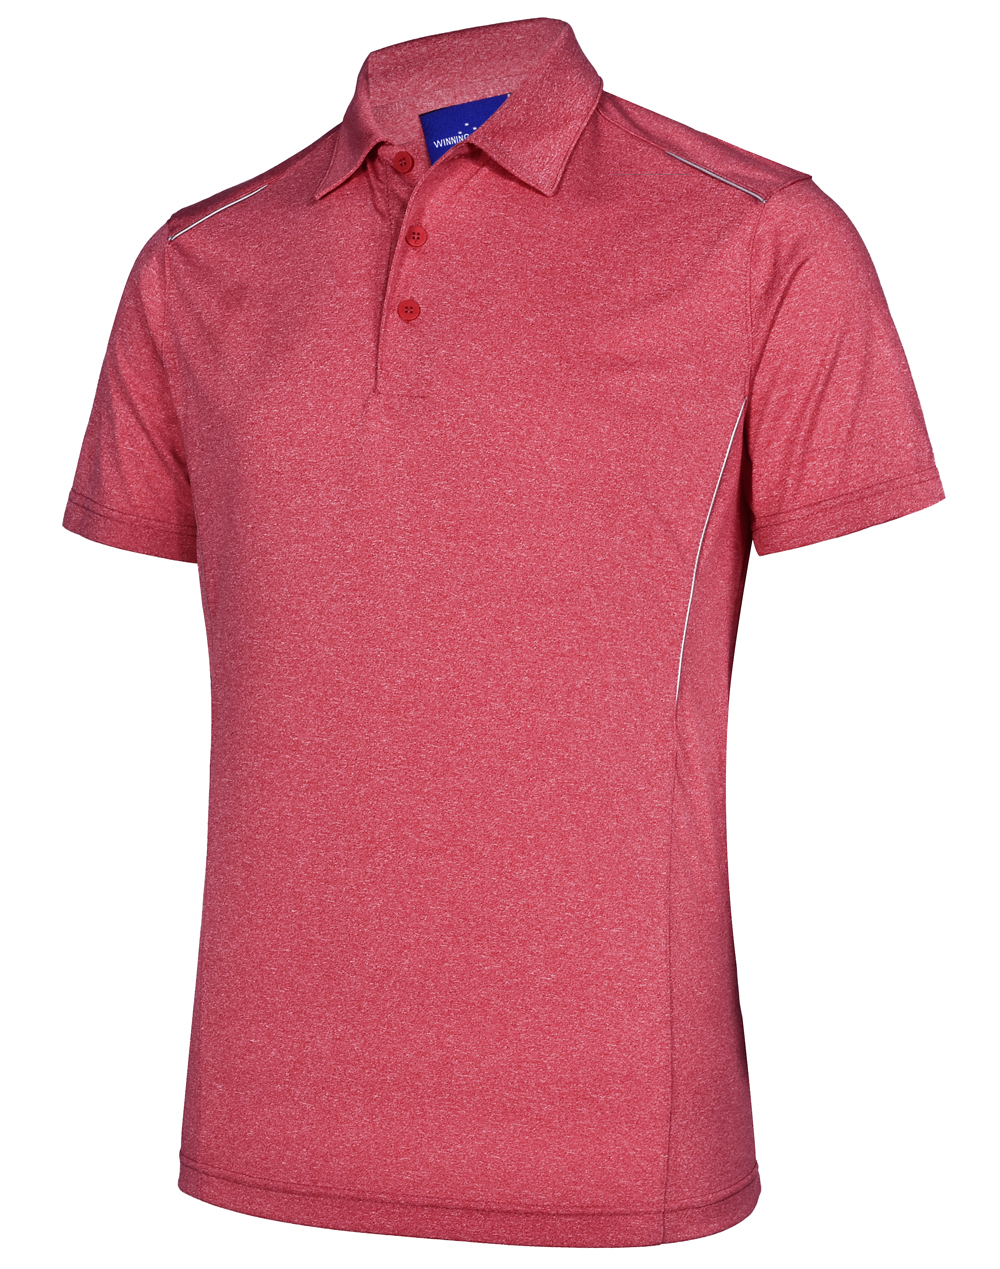 https://s3-ap-southeast-1.amazonaws.com/ws-imgs/POLOSHIRTS/PS85_Red_Side.jpg